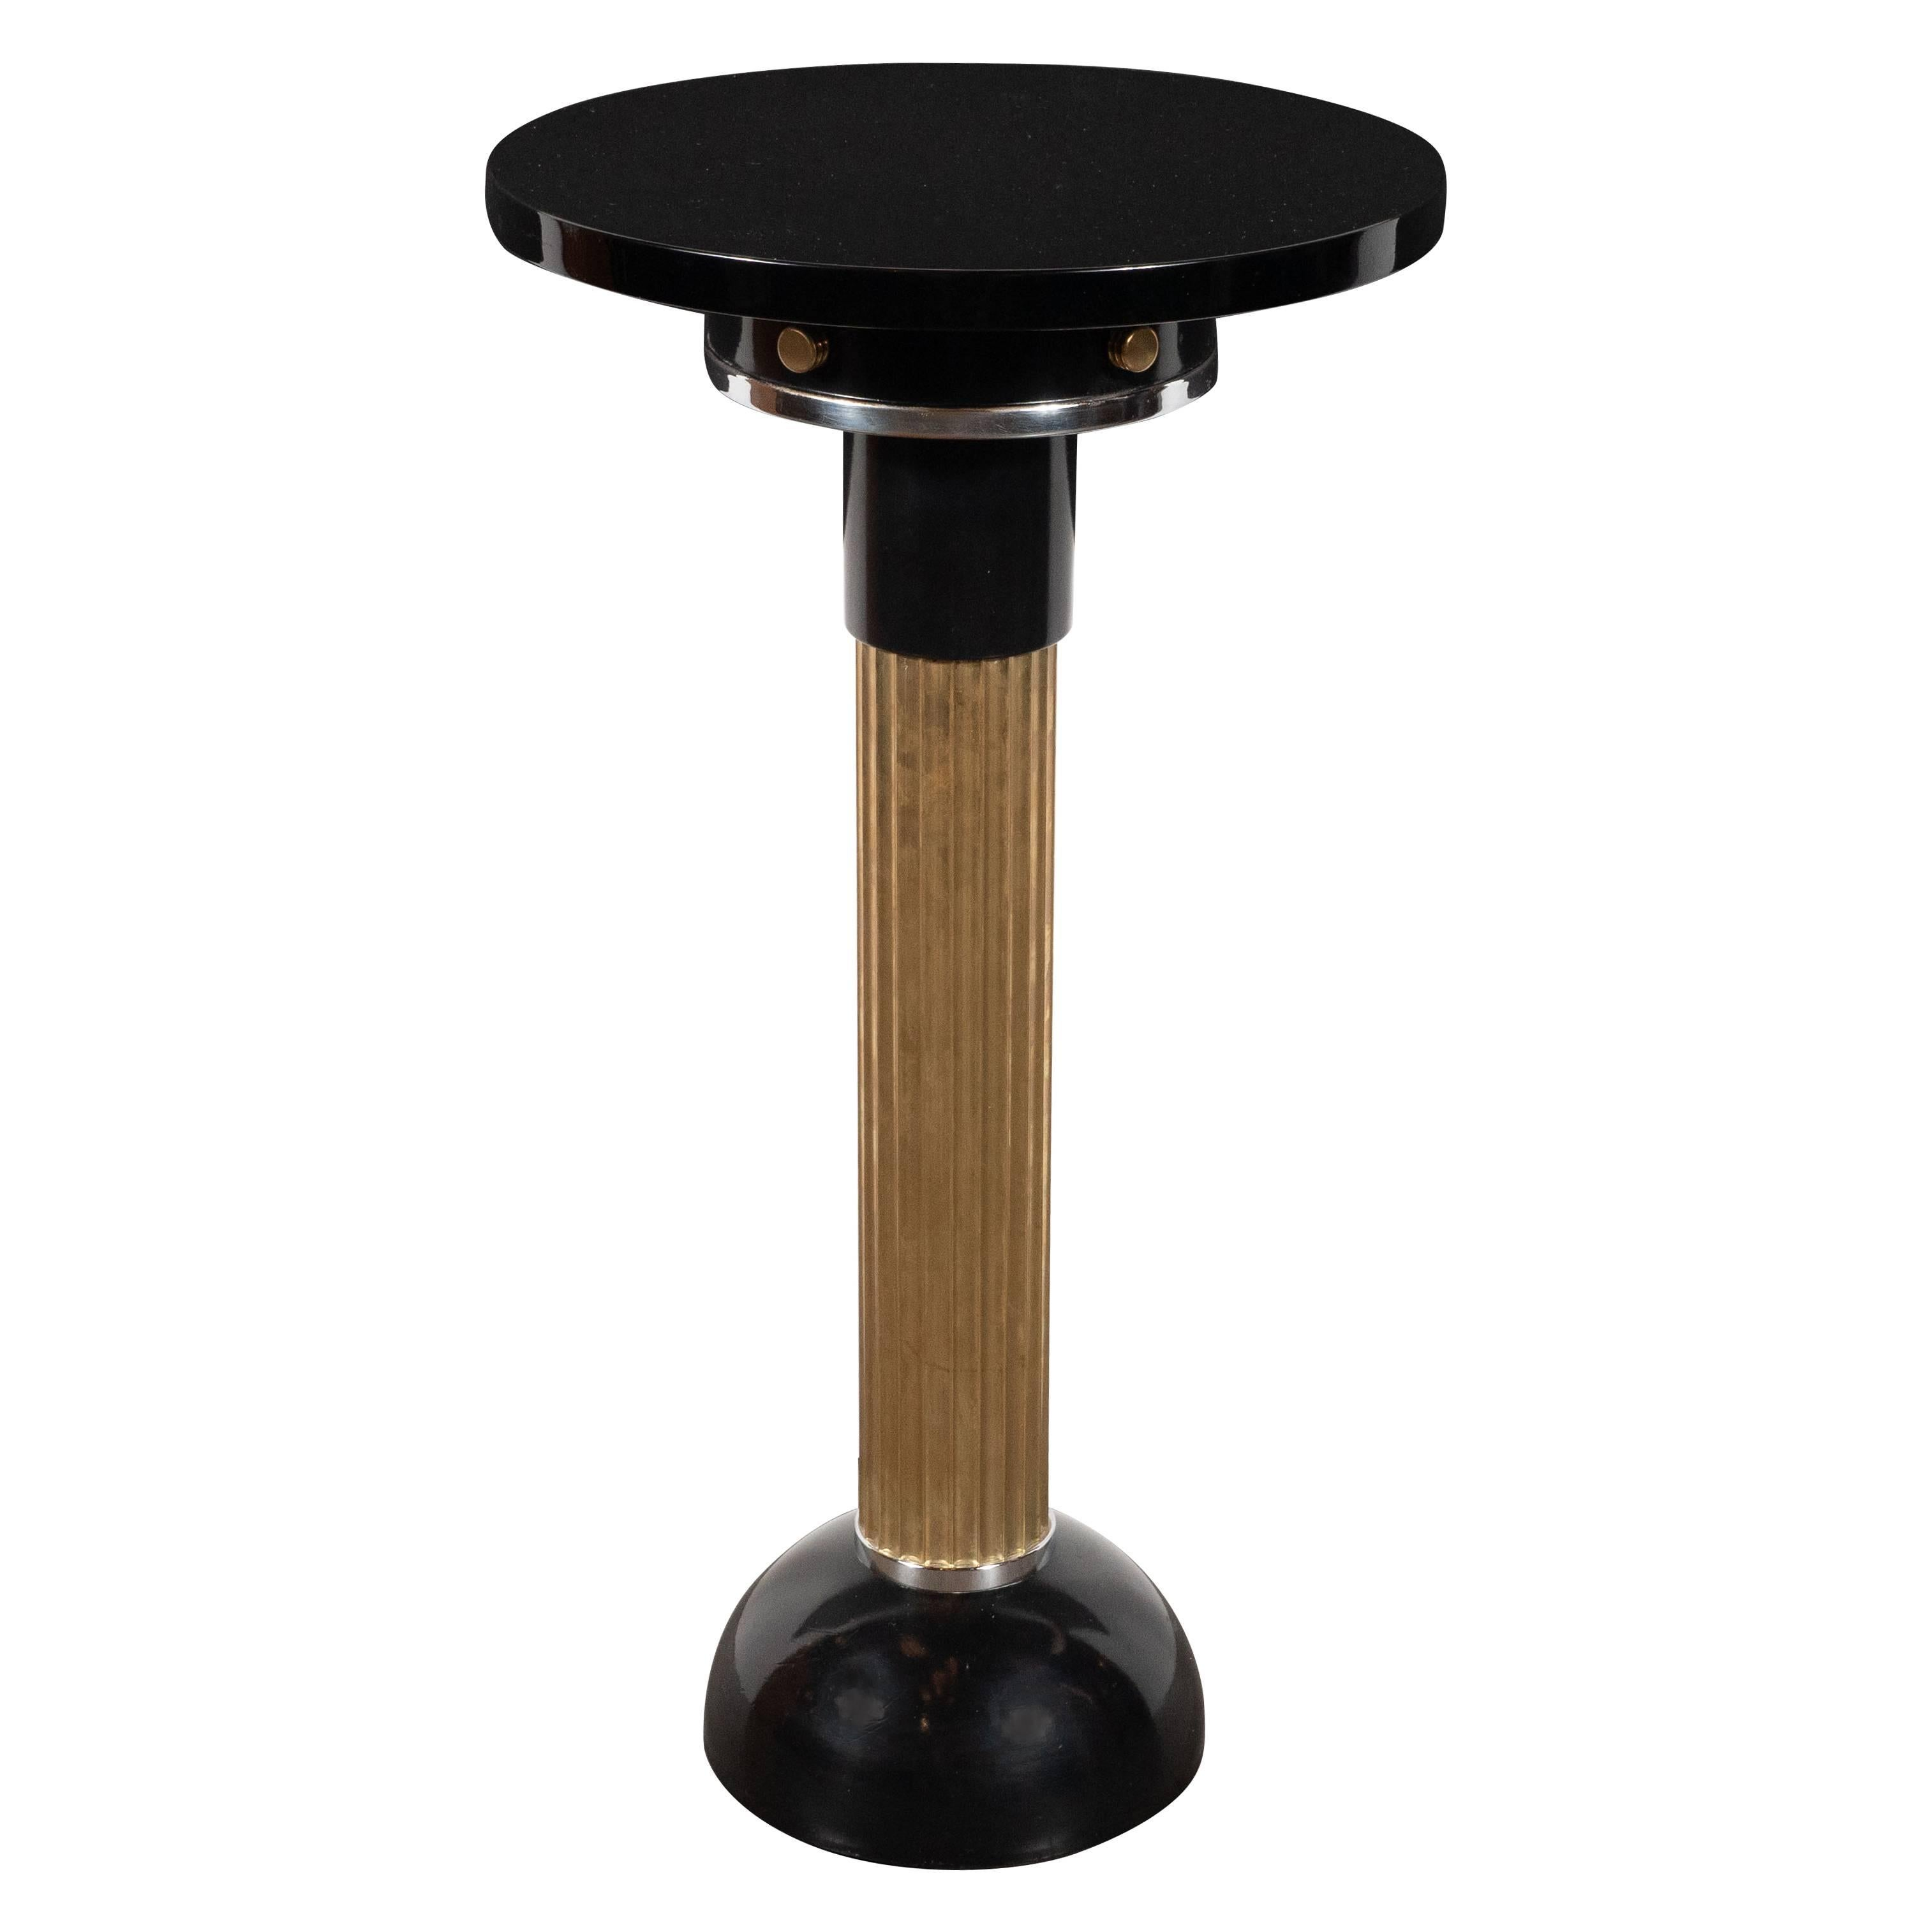 Art Deco Machine Age Black Lacquer, Enamel, Brass and Chrome Drinks Table